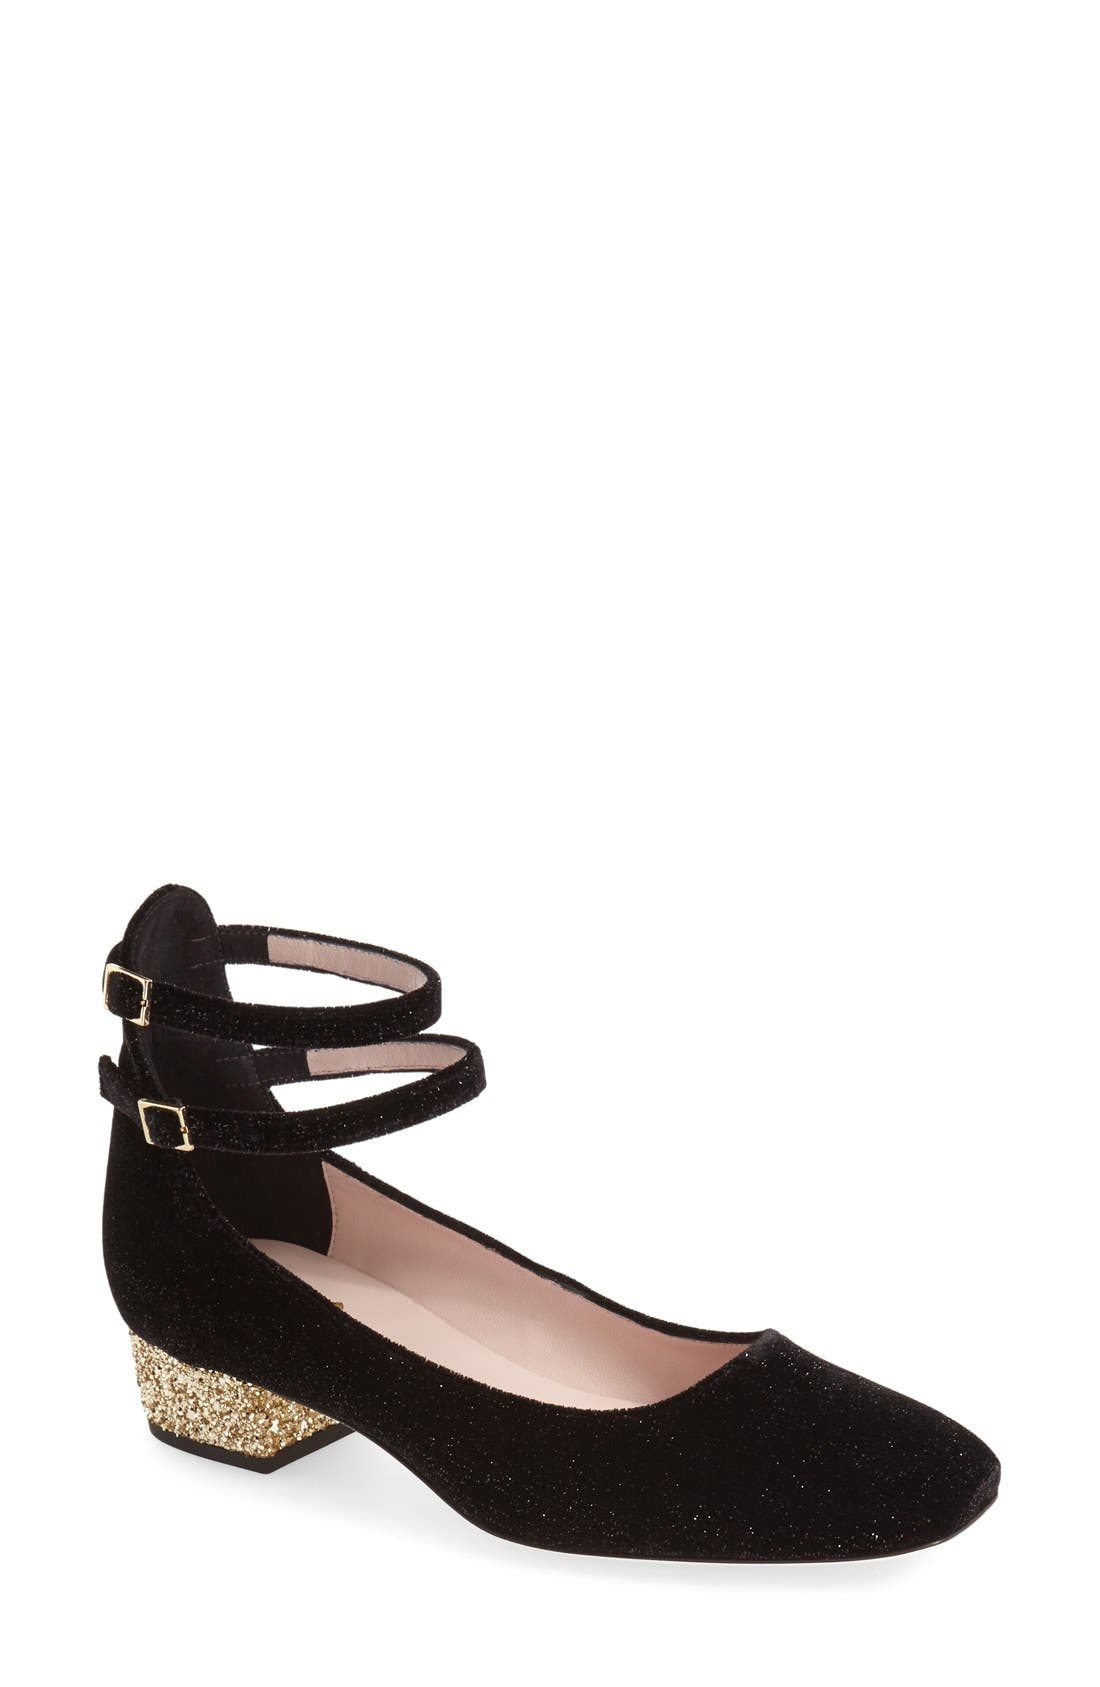 Main Image - kate spade new york 'marcellina' ankle strap pump (Women)